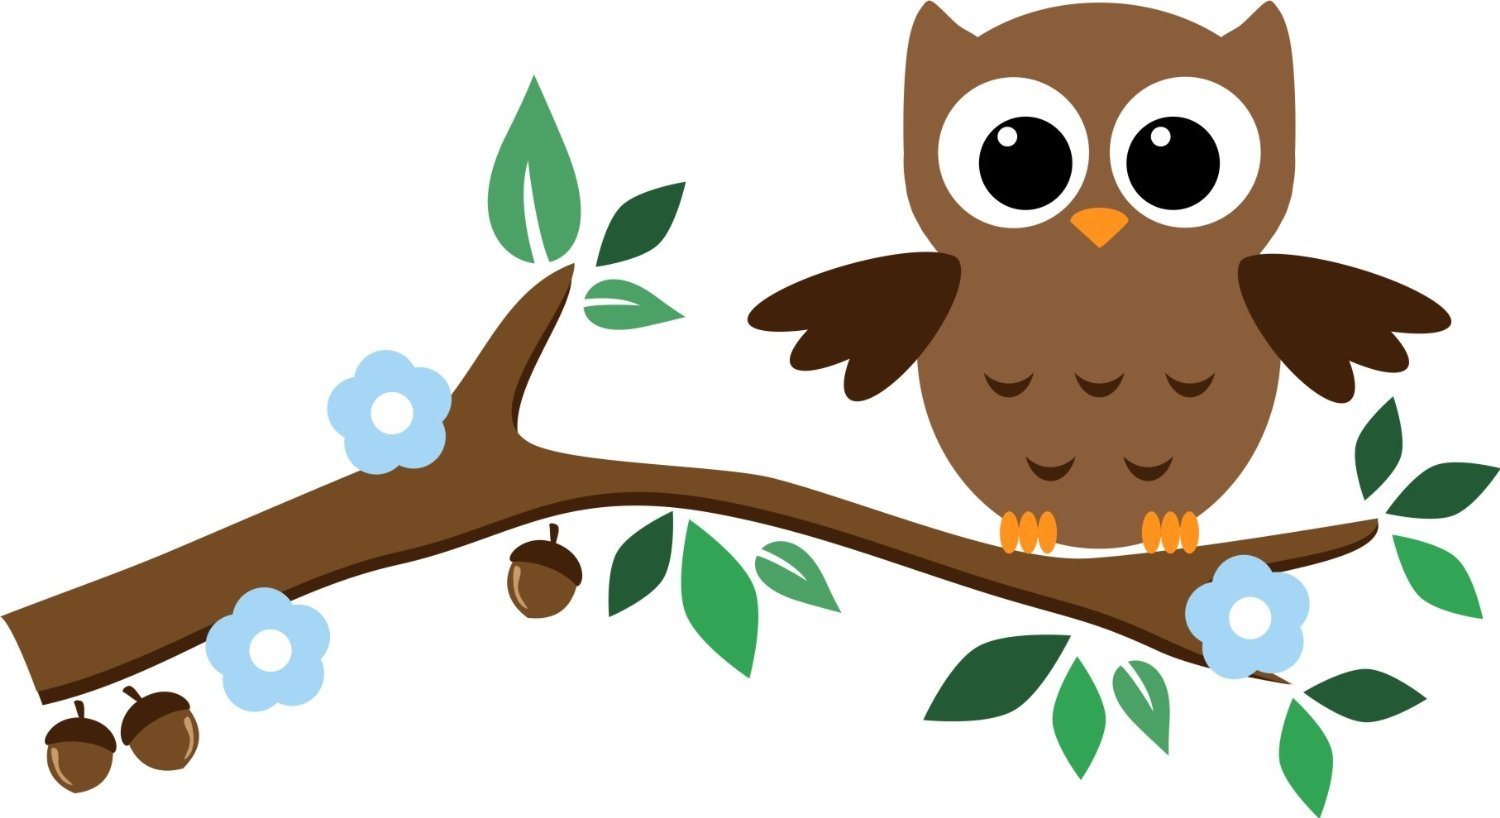 Amazon cute baby owl wall stickers with leaves flower and amazon cute baby owl wall stickers with leaves flower and branch removable decoration wall decal cute wall art wall quote wall saying wall amipublicfo Gallery